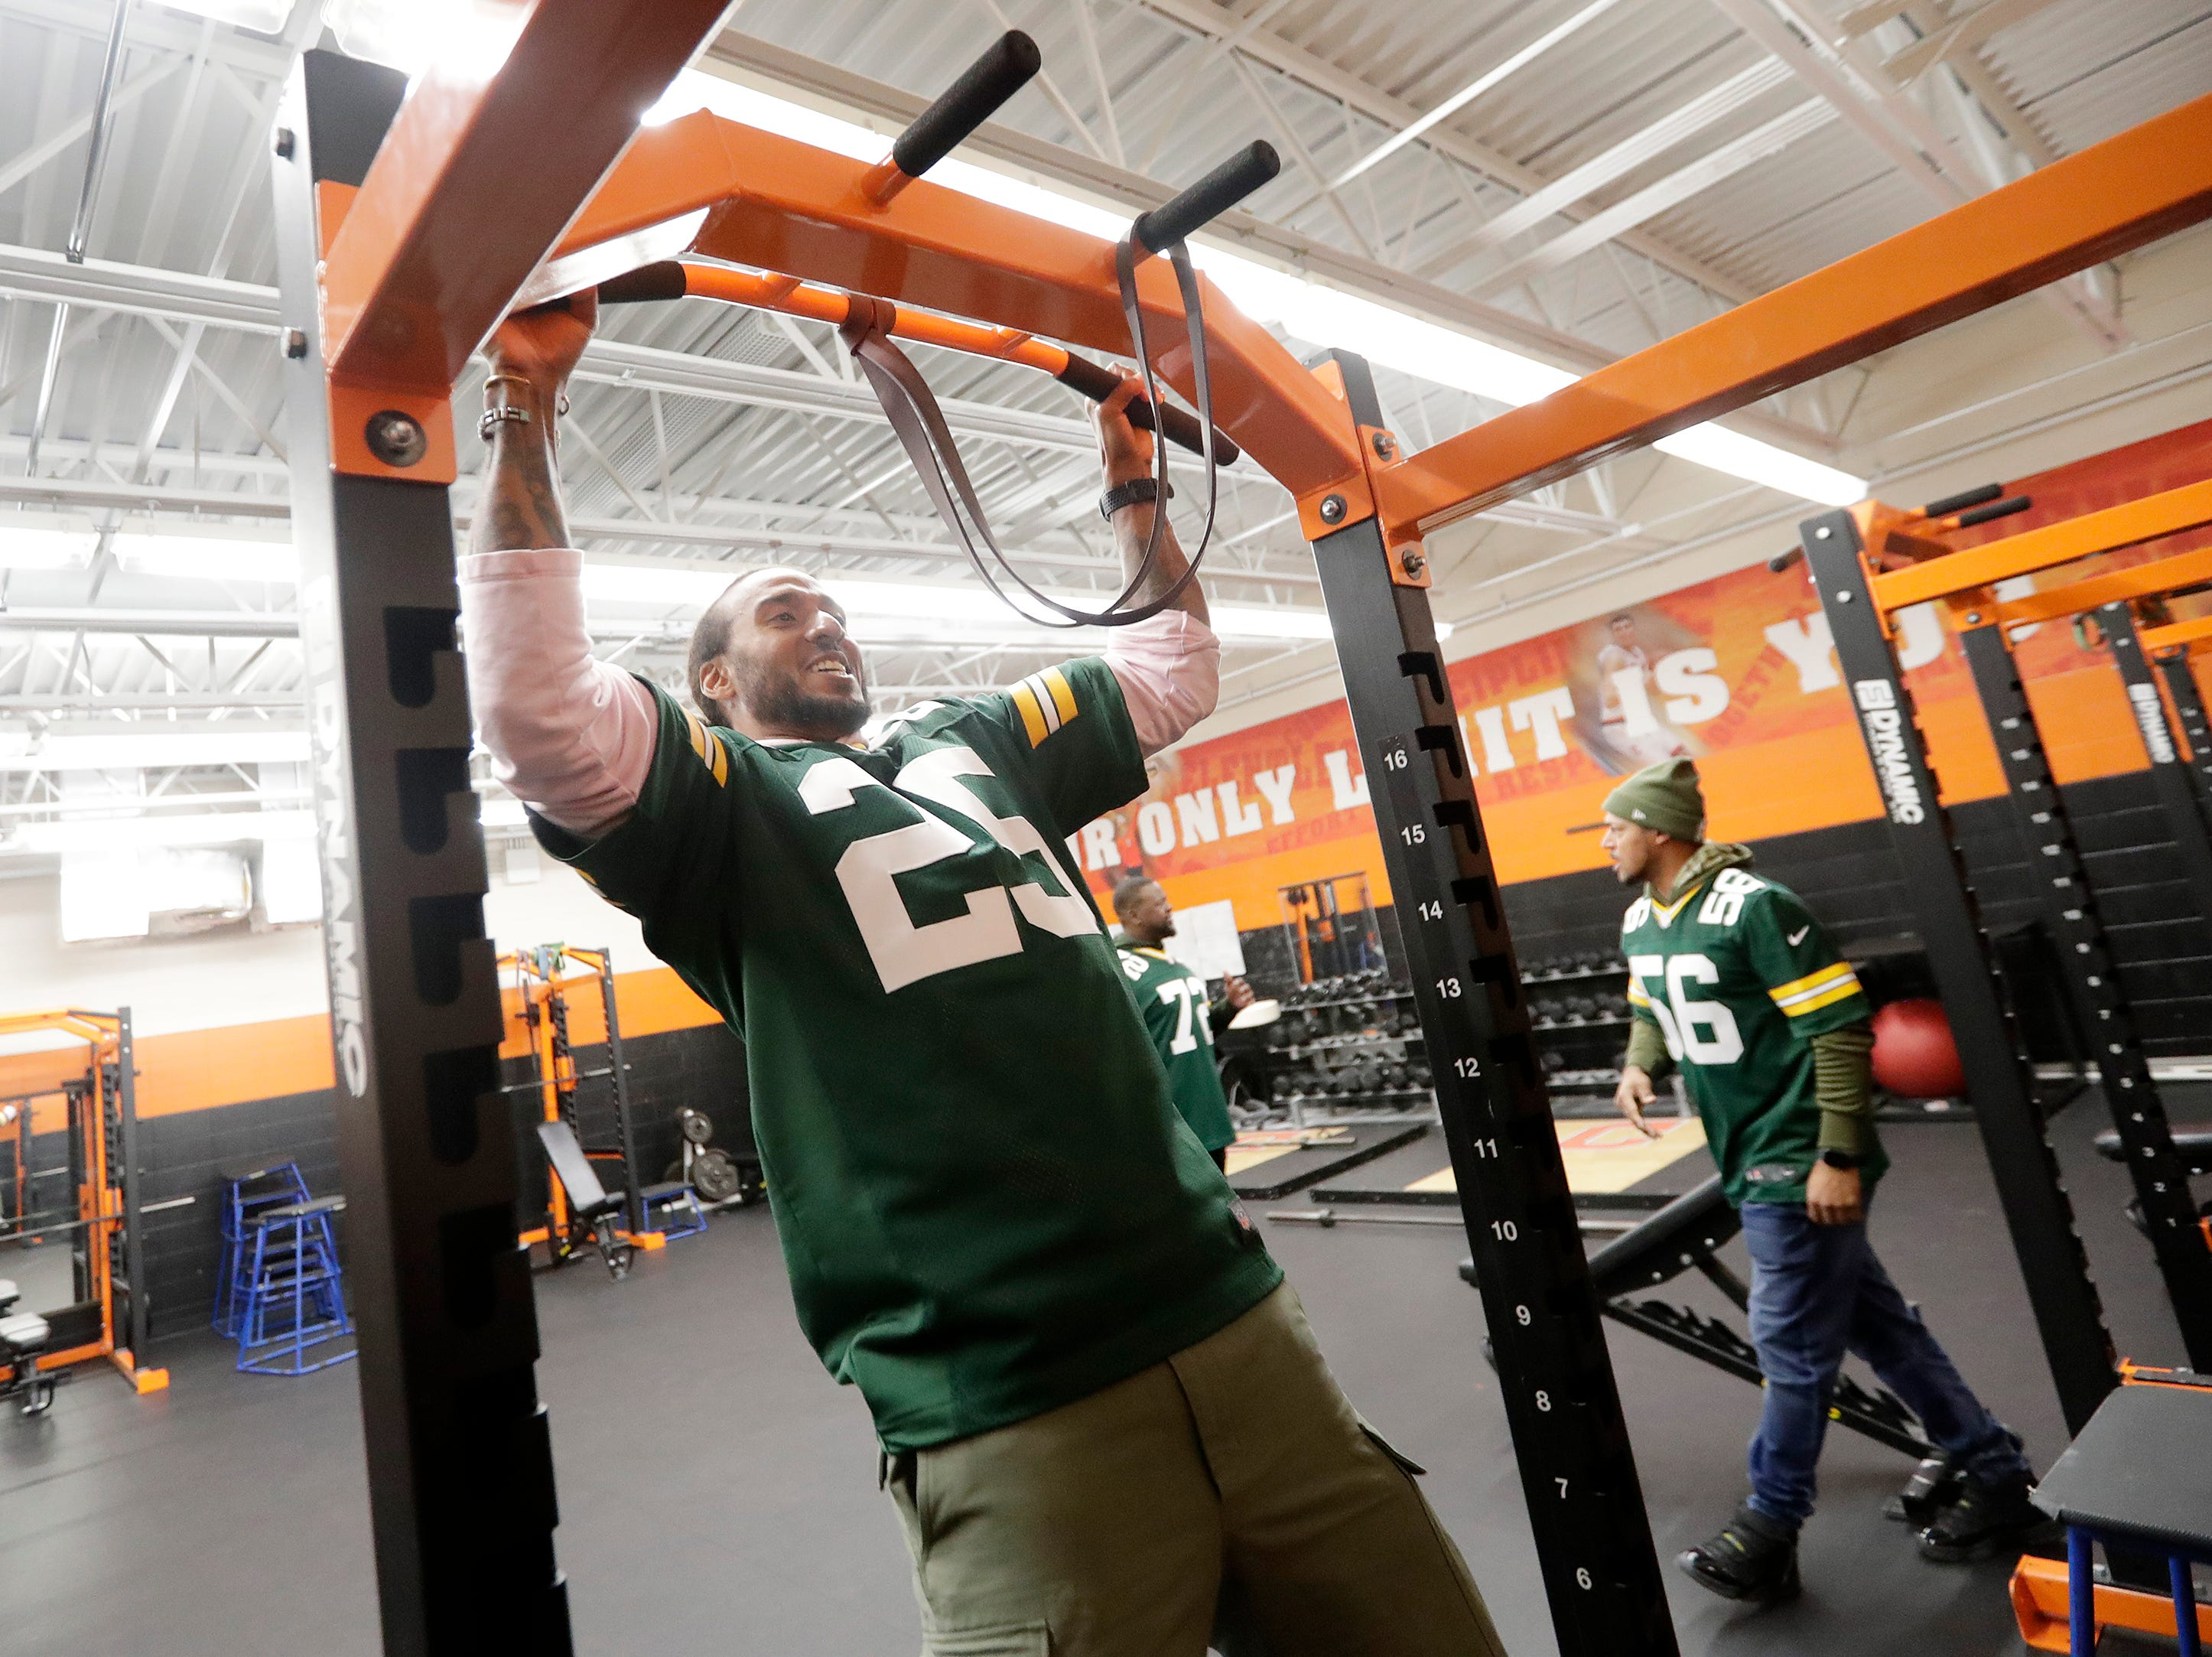 Former Green Bay Packers player Ryan Grant checks out the weight room during a stop on the Packers Tailgate Tour at Clintonville High School on Tuesday, April 9, 2019 in Clintonville, Wis.